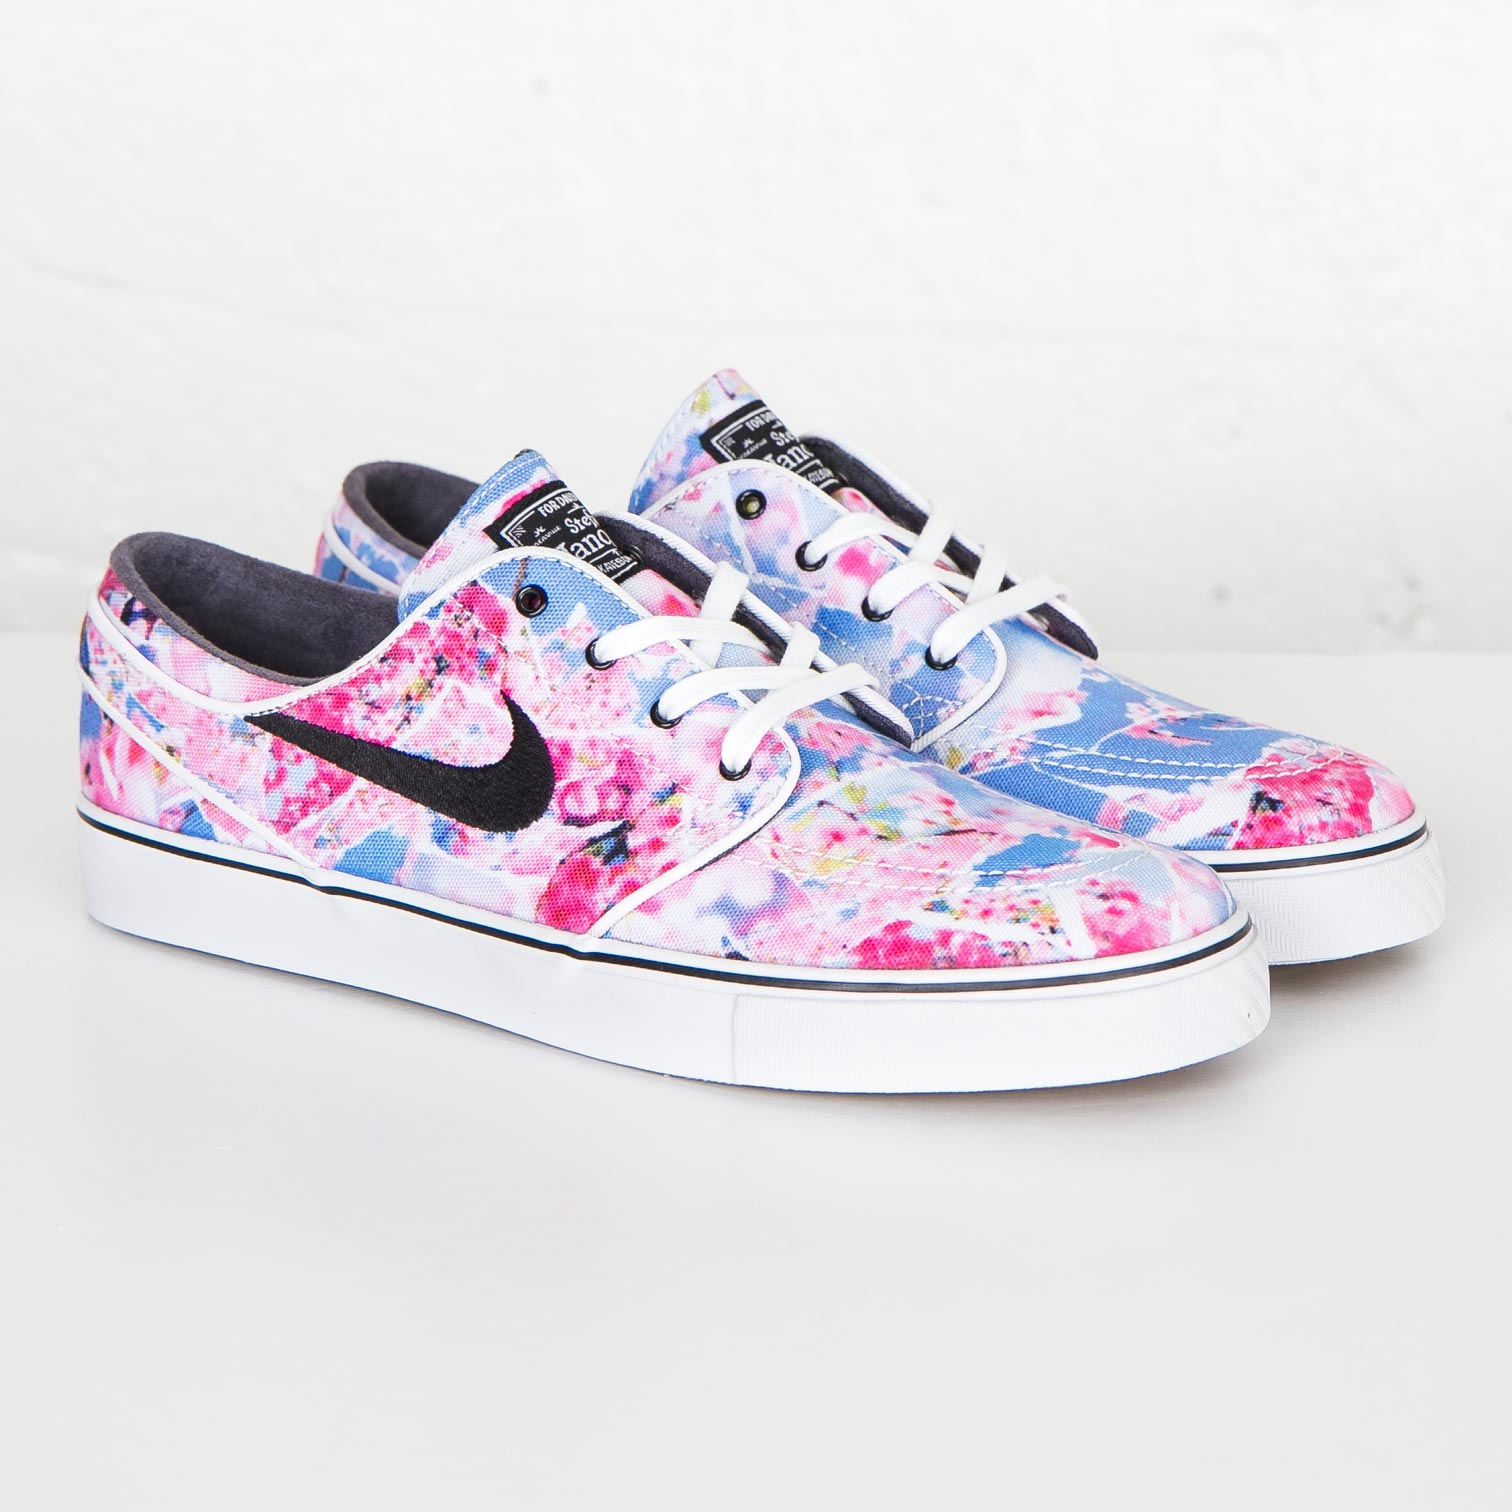 733a088e7 Nike Air Zoom Stefan Janoski Canvas Premium - 705190-602 ...